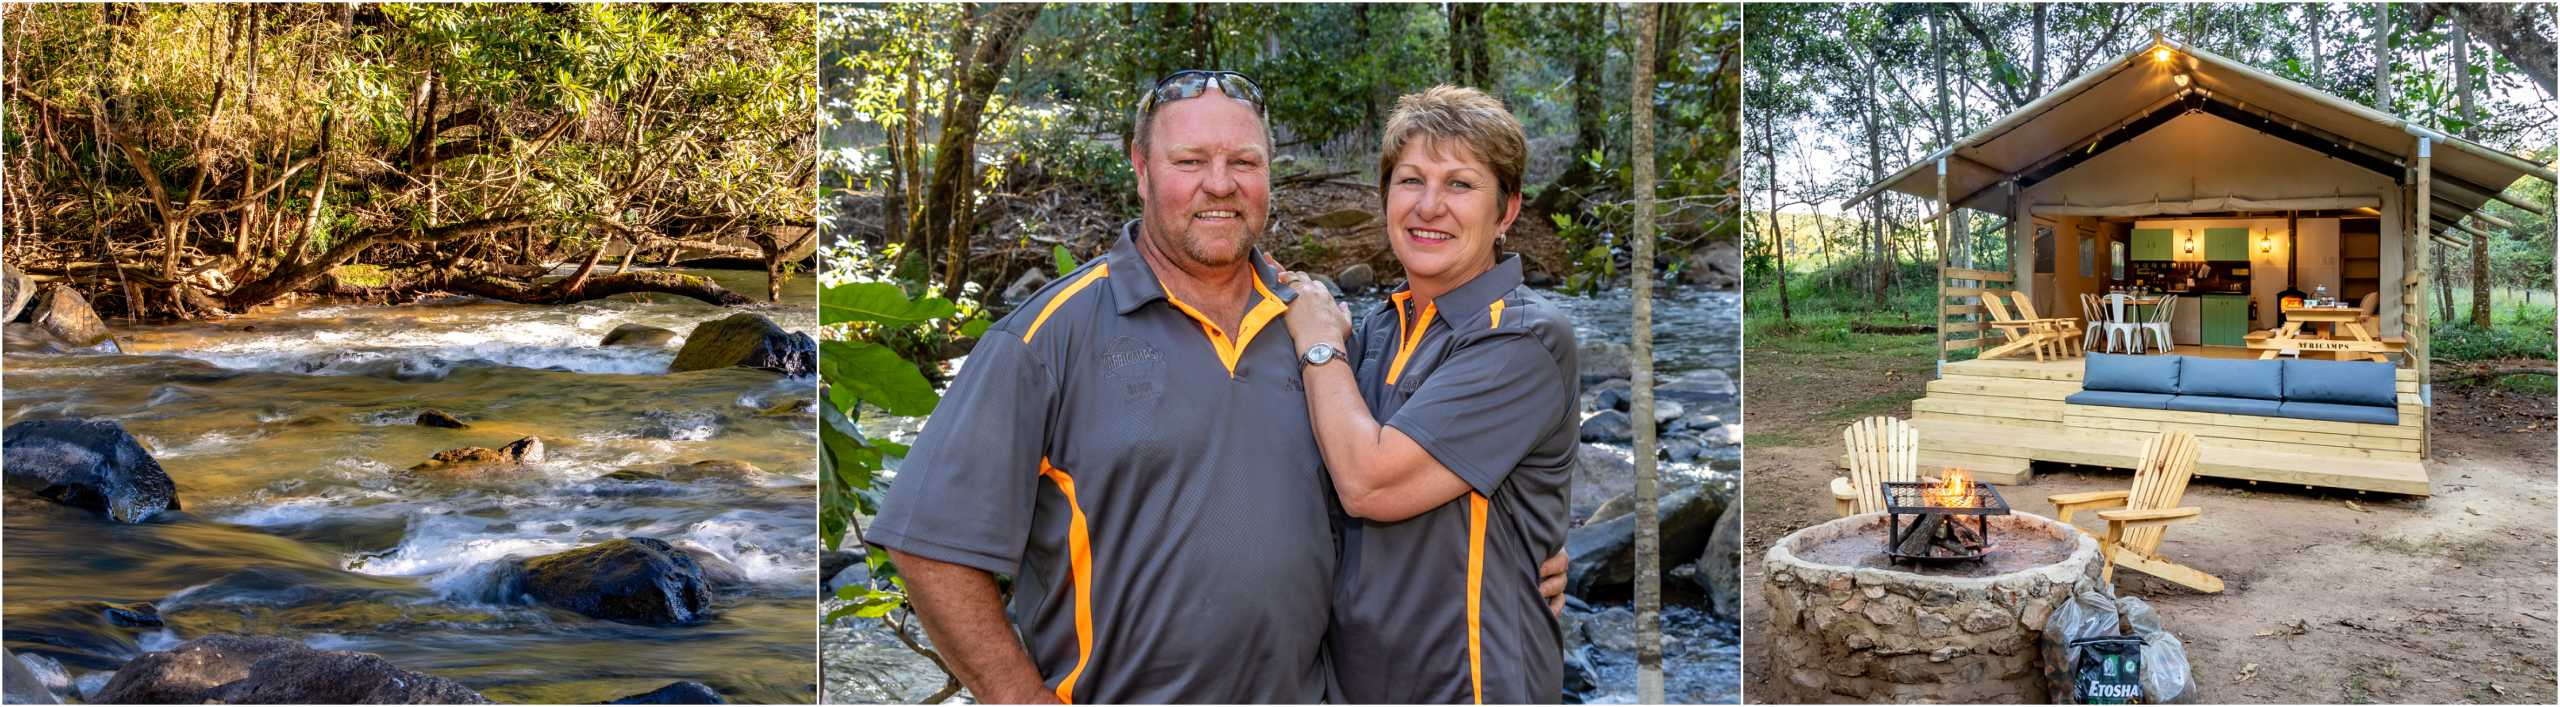 AfriCamps at Mackers Hazyview Hosts Michelle and Ryan MCain